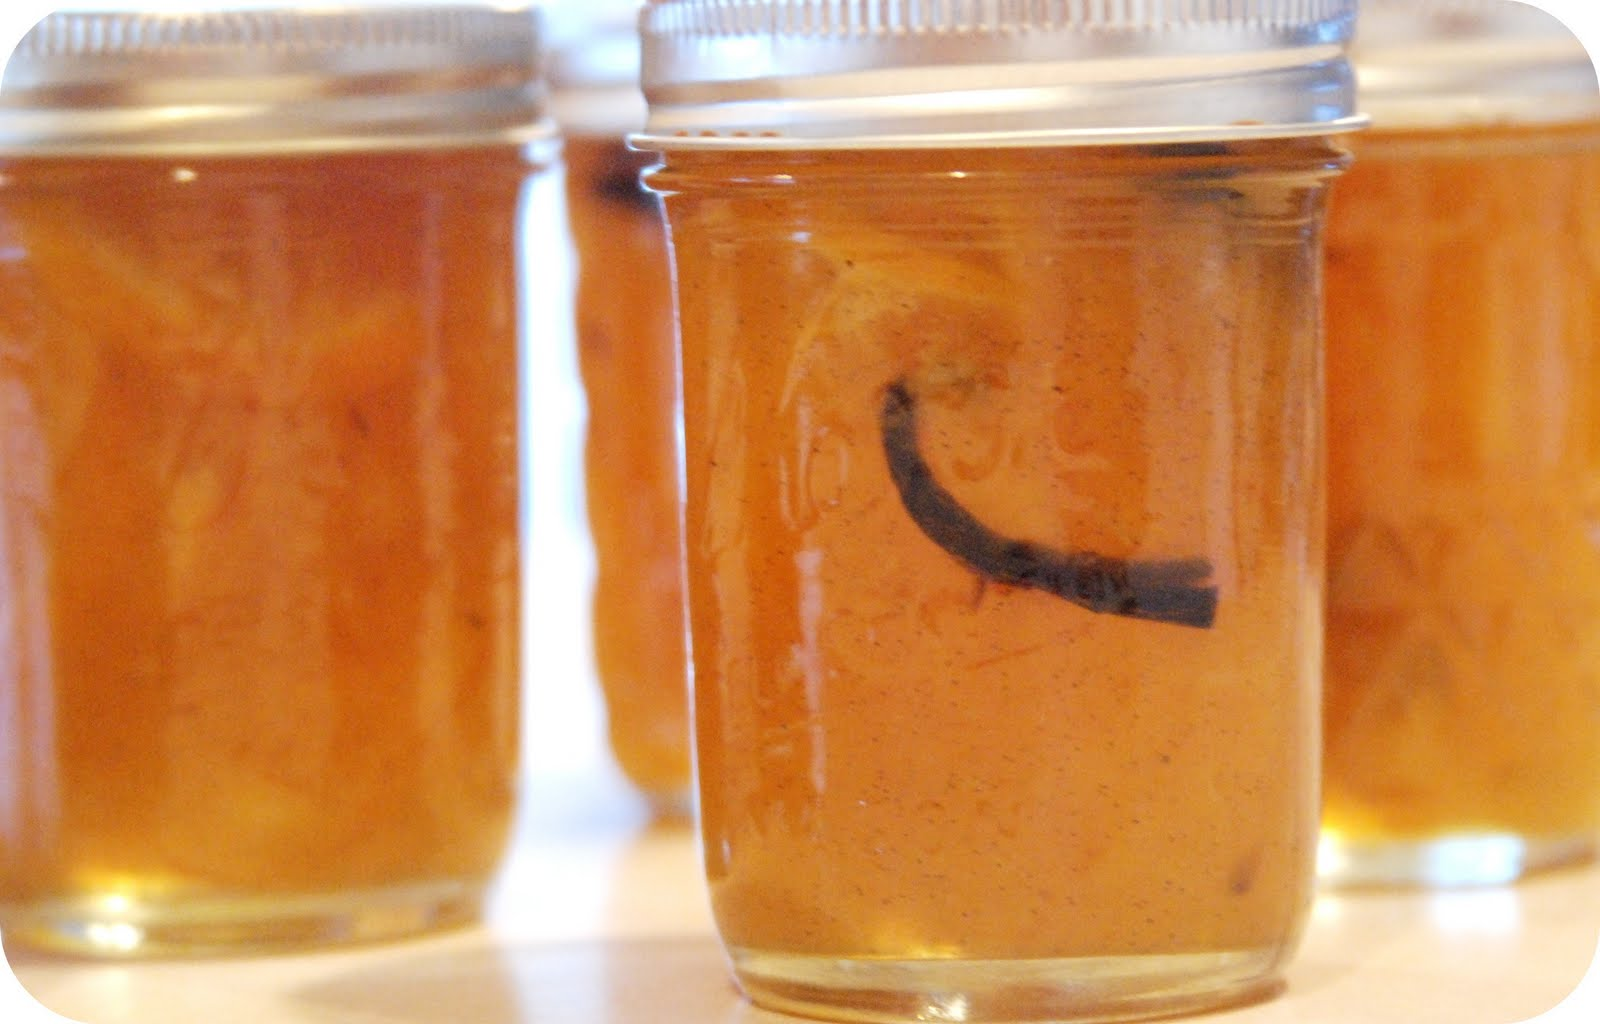 ... Serenity: Putting Food By - Meyer Lemon Marmalade with Vanilla Bean